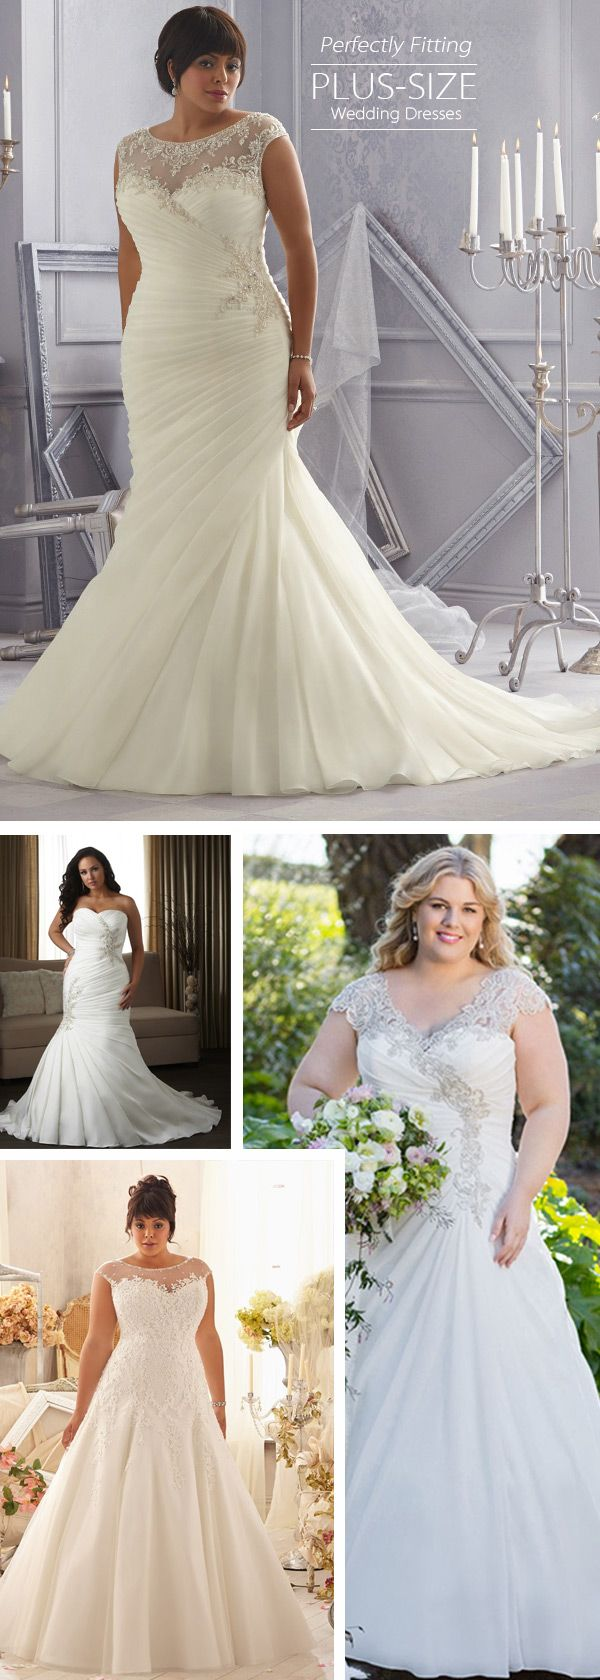 Sydney plus size wedding dresses - Want A Plus Size Wedding Dress That Is Beautiful And Affordable Dressilyme Has Stunning Plus